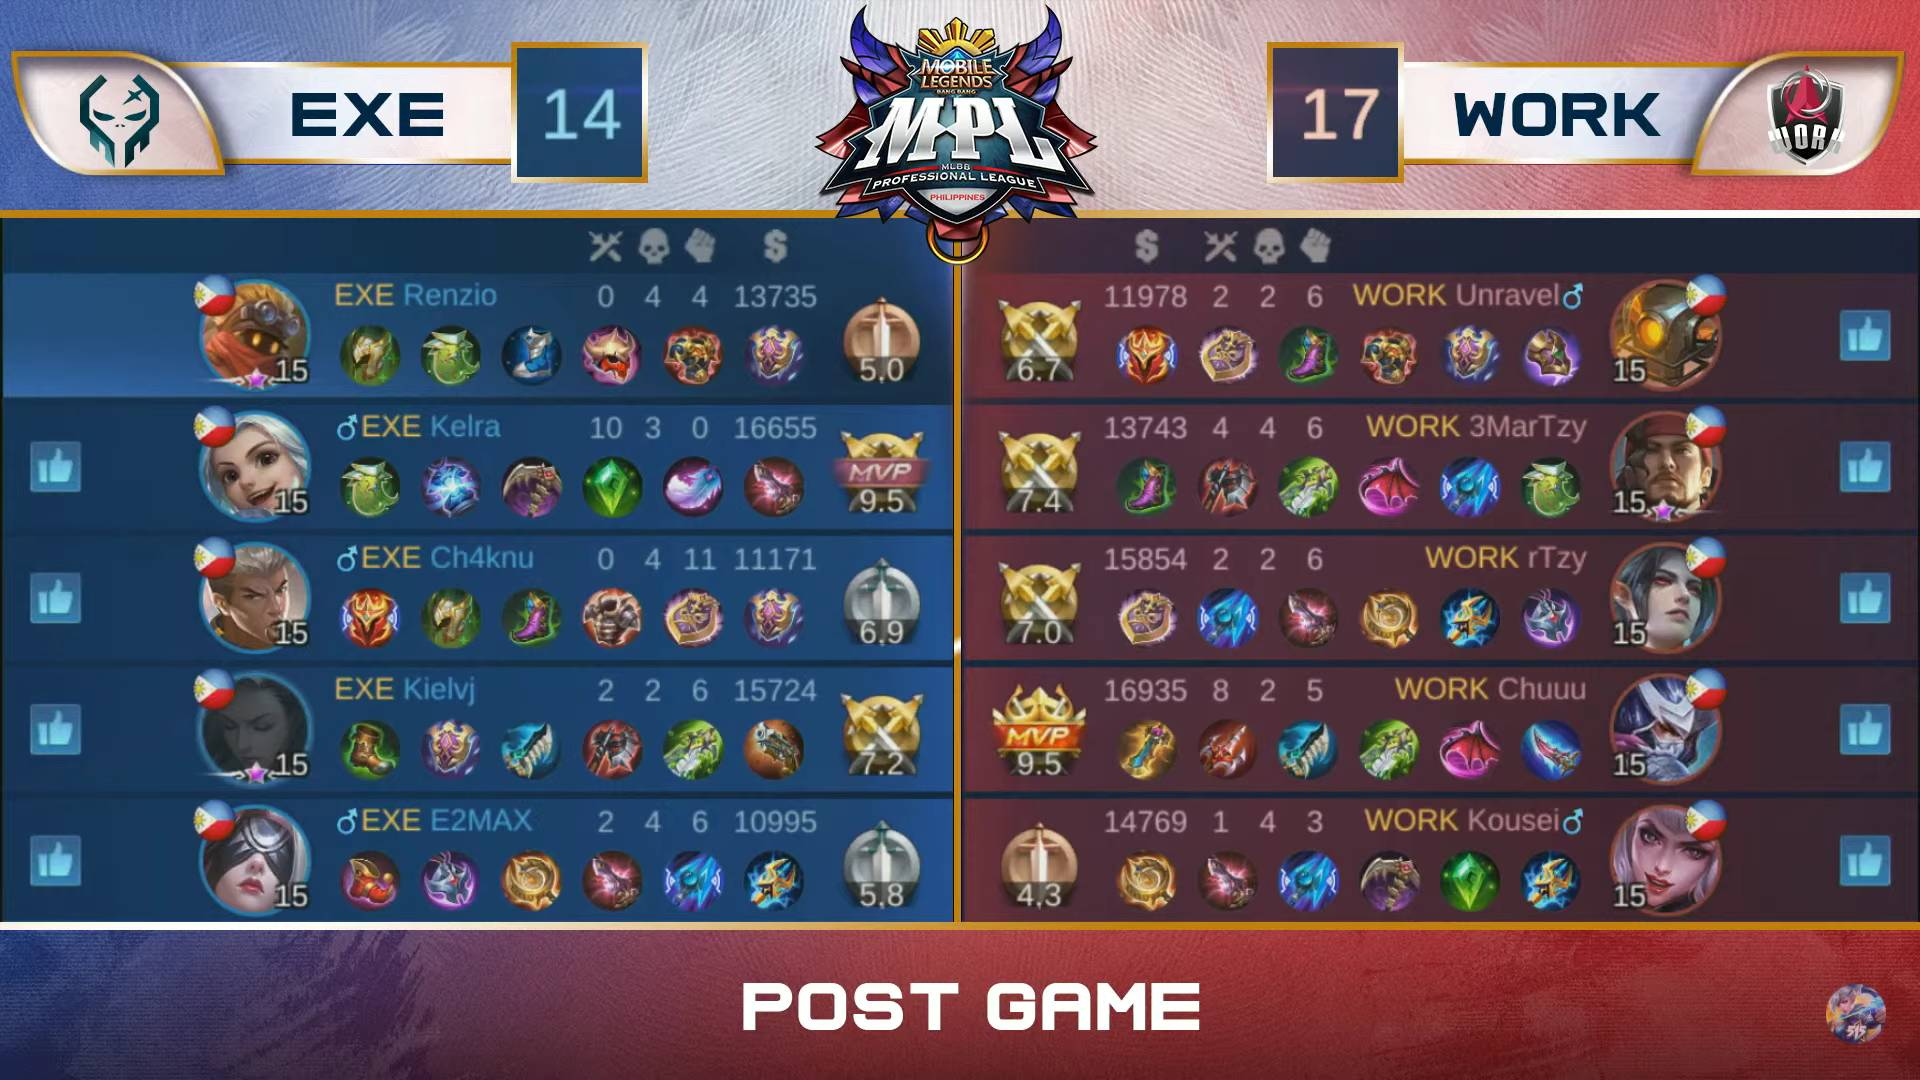 MPL-PH-Season-7-Work-Auster-def-Execration-Game-3 Work Auster pulls epic come-from-behind win vs Execration in MPL PH ESports Mobile Legends MPL-PH News  - philippine sports news